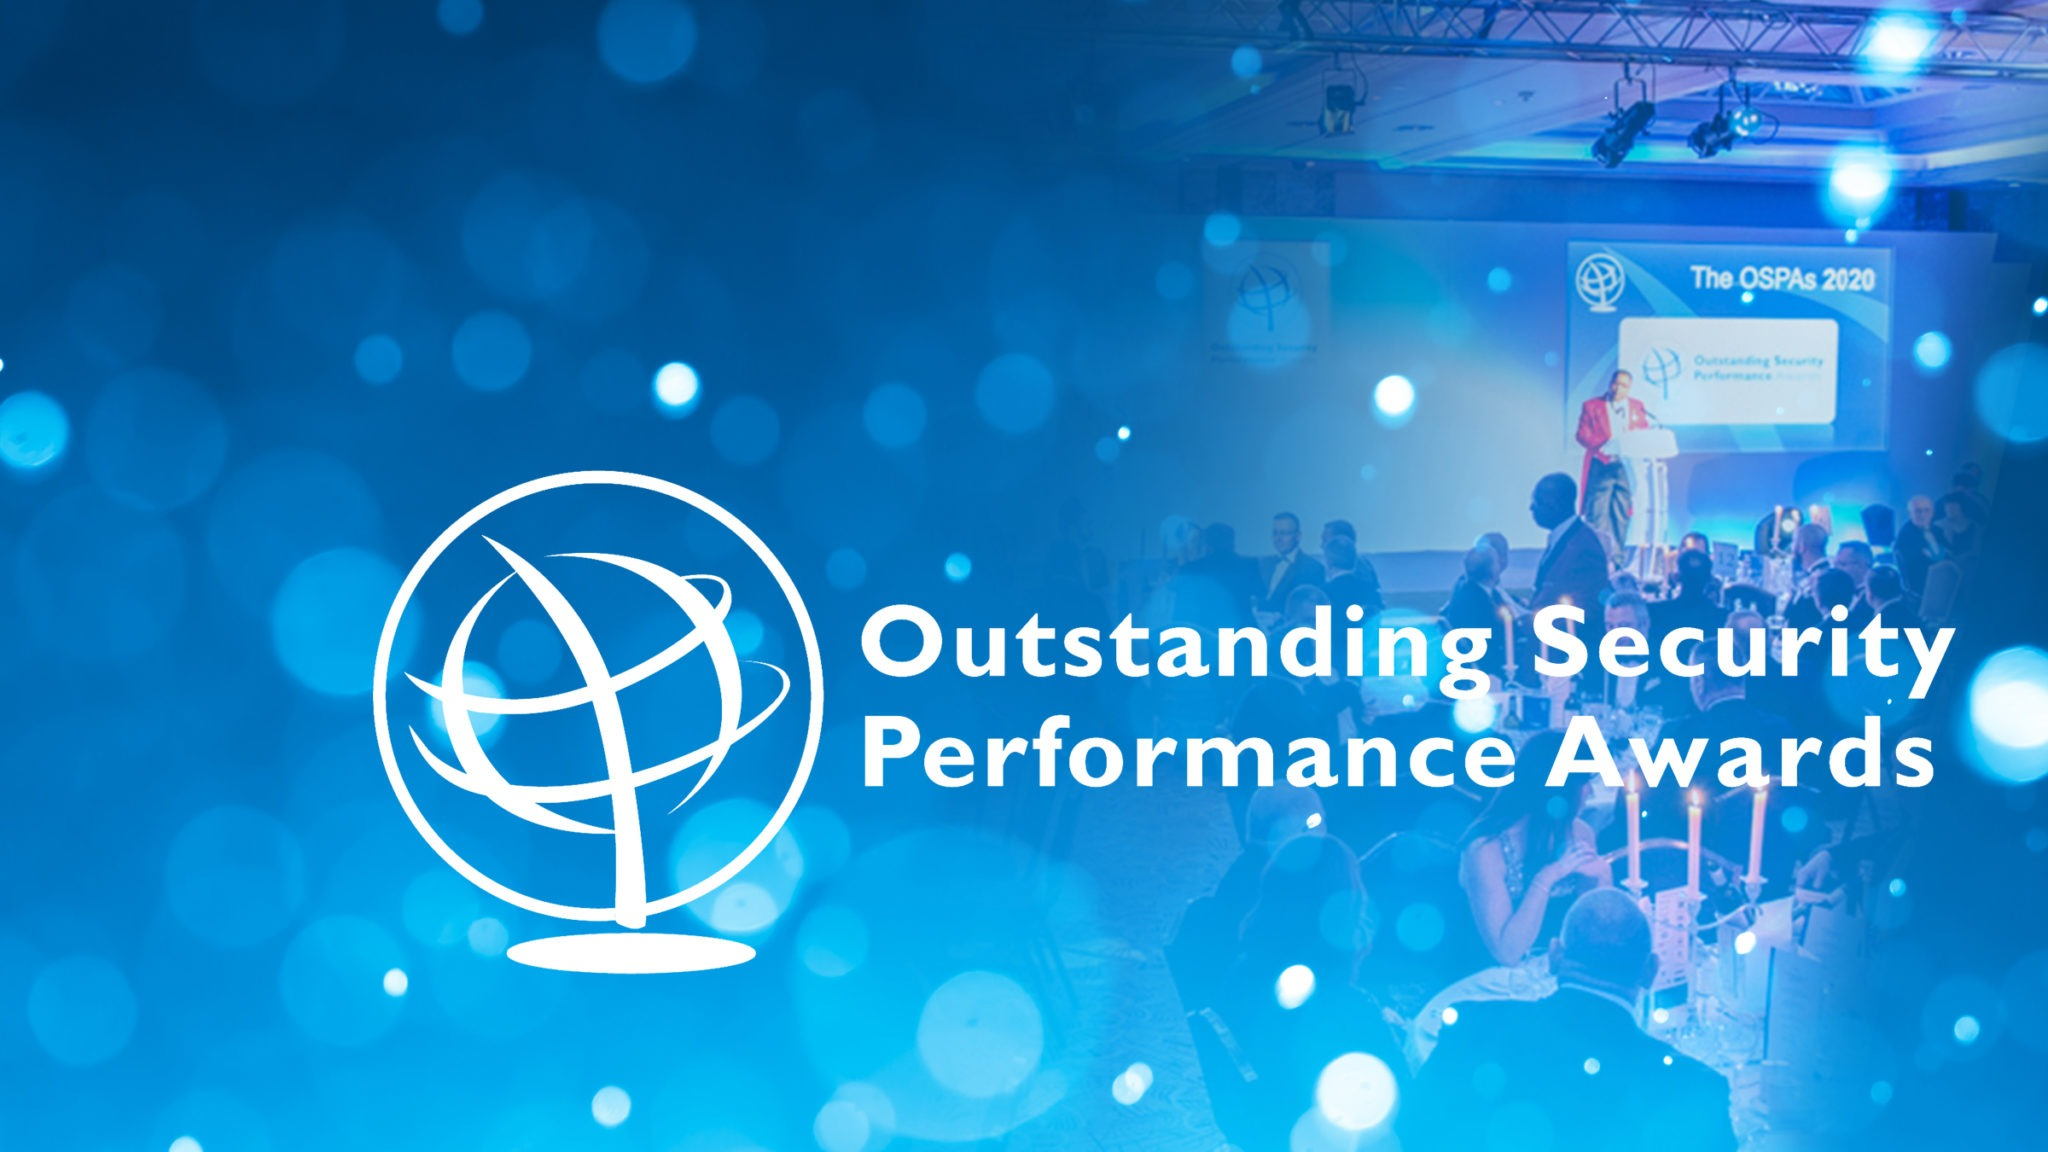 TrackTik presents award at the Outstanding Security Performance Awards (OSPAs)